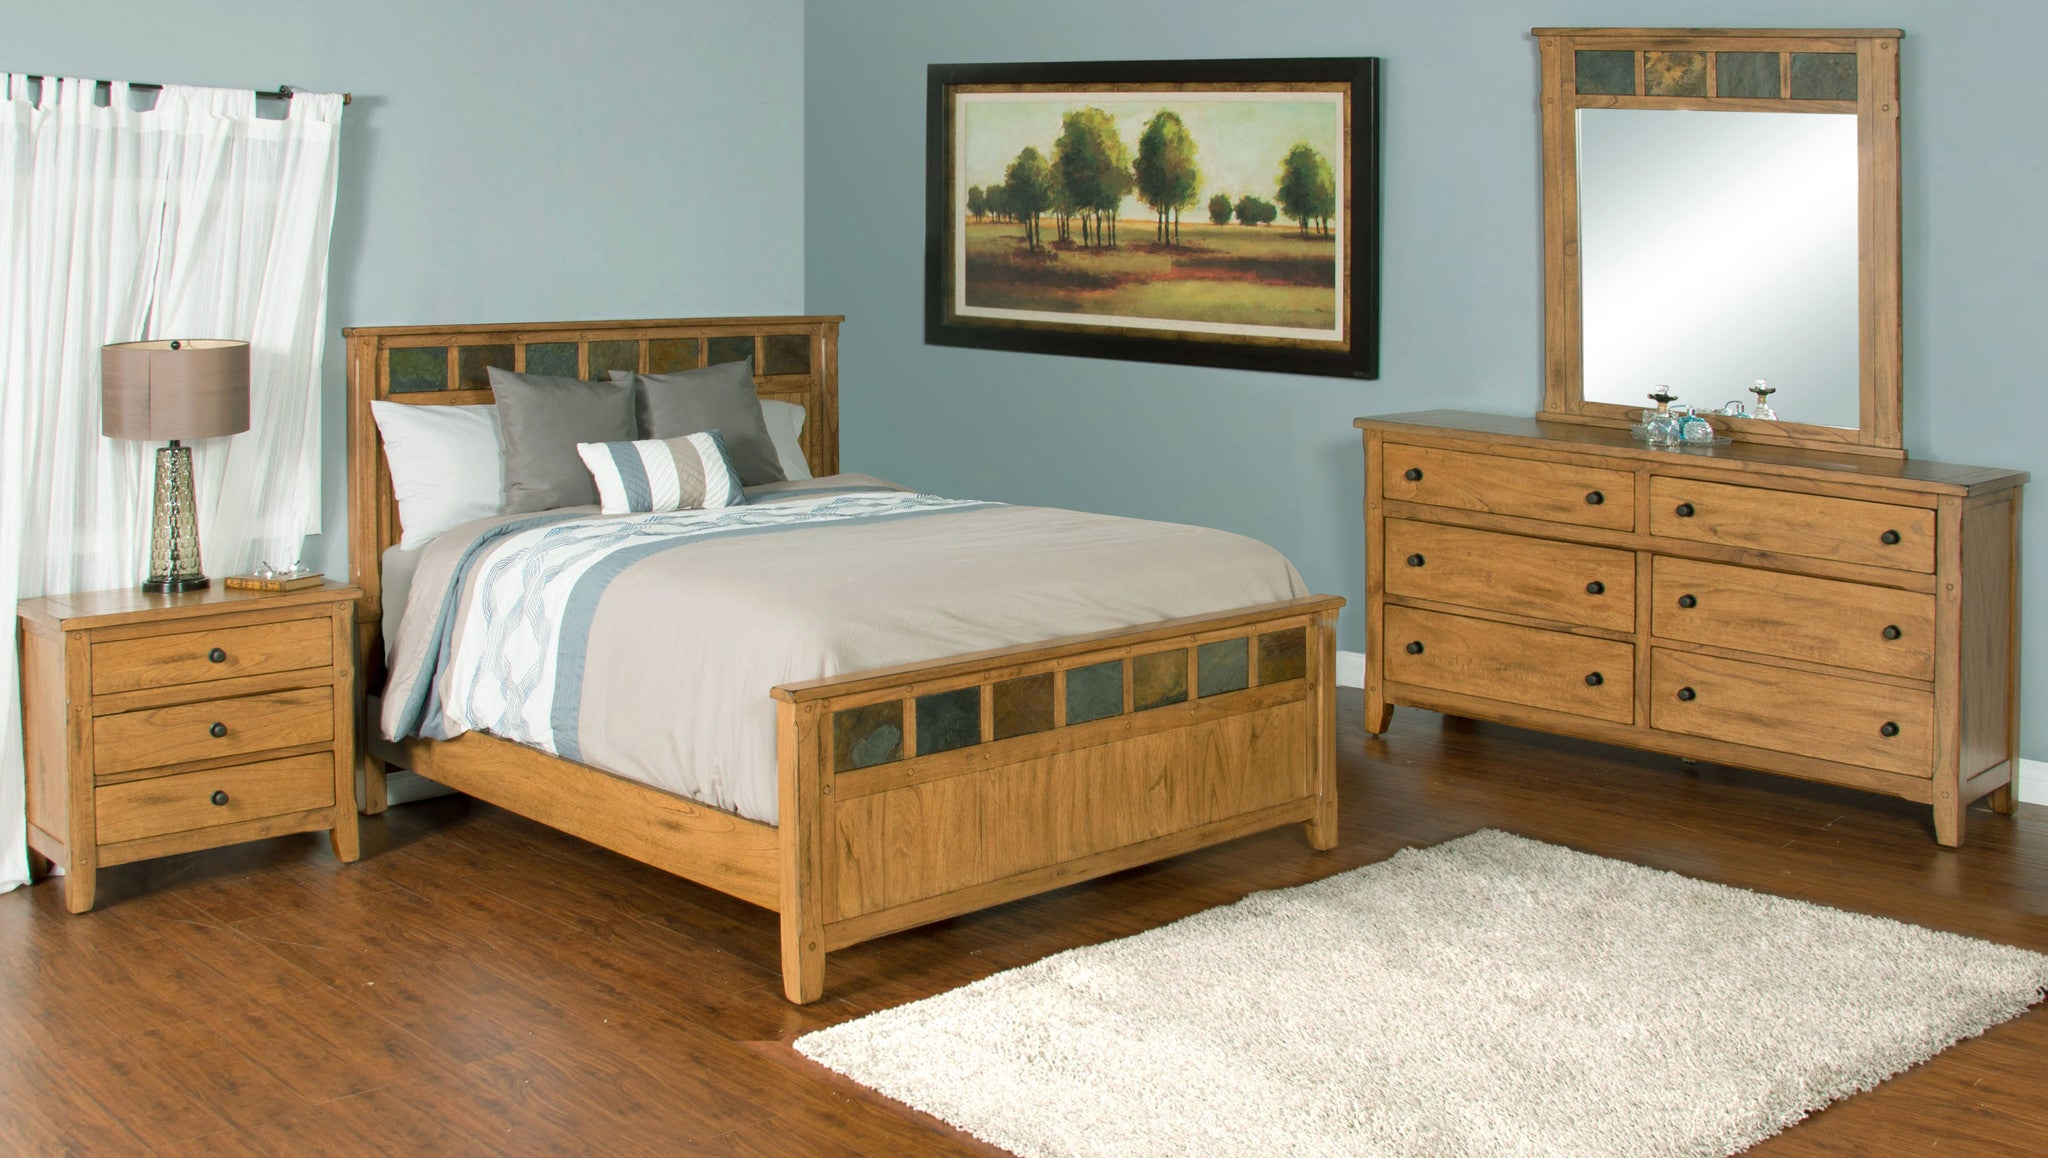 Sedona Rustic Petite Panel Bedroom Suite Queen Size